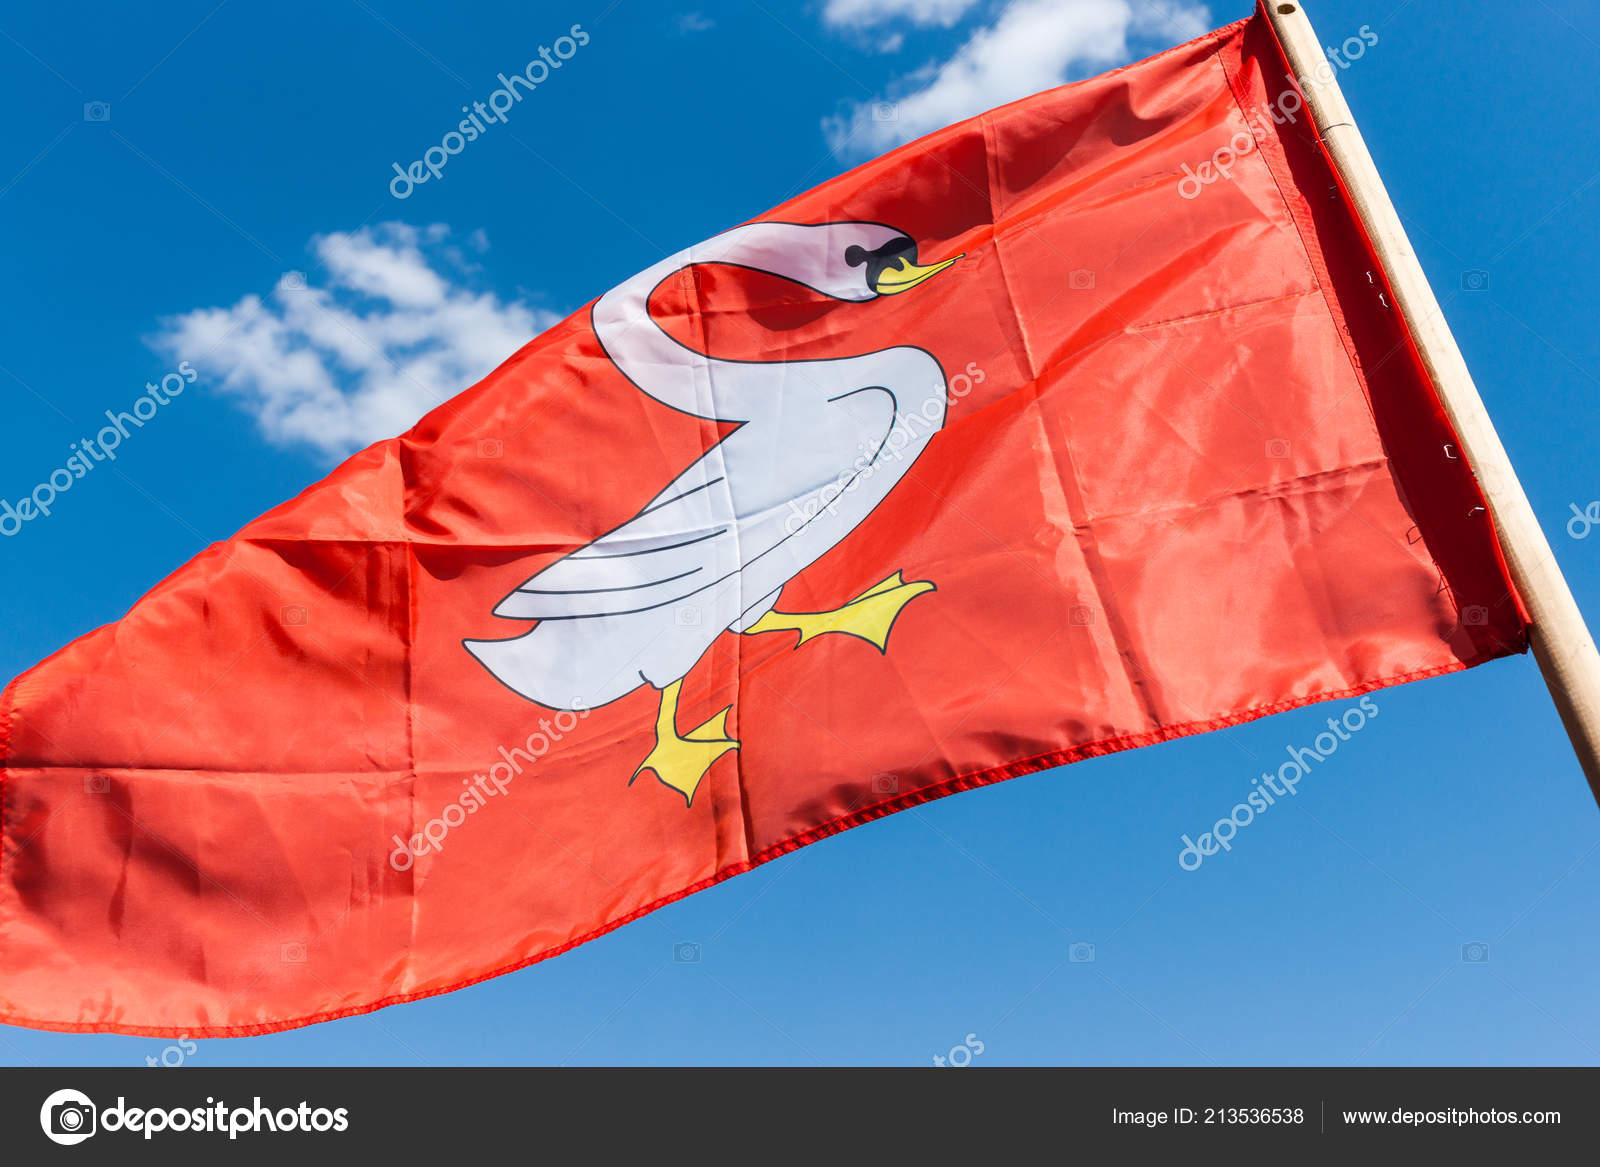 Knightly Flag Red Color Image White Goose Middle Flutter